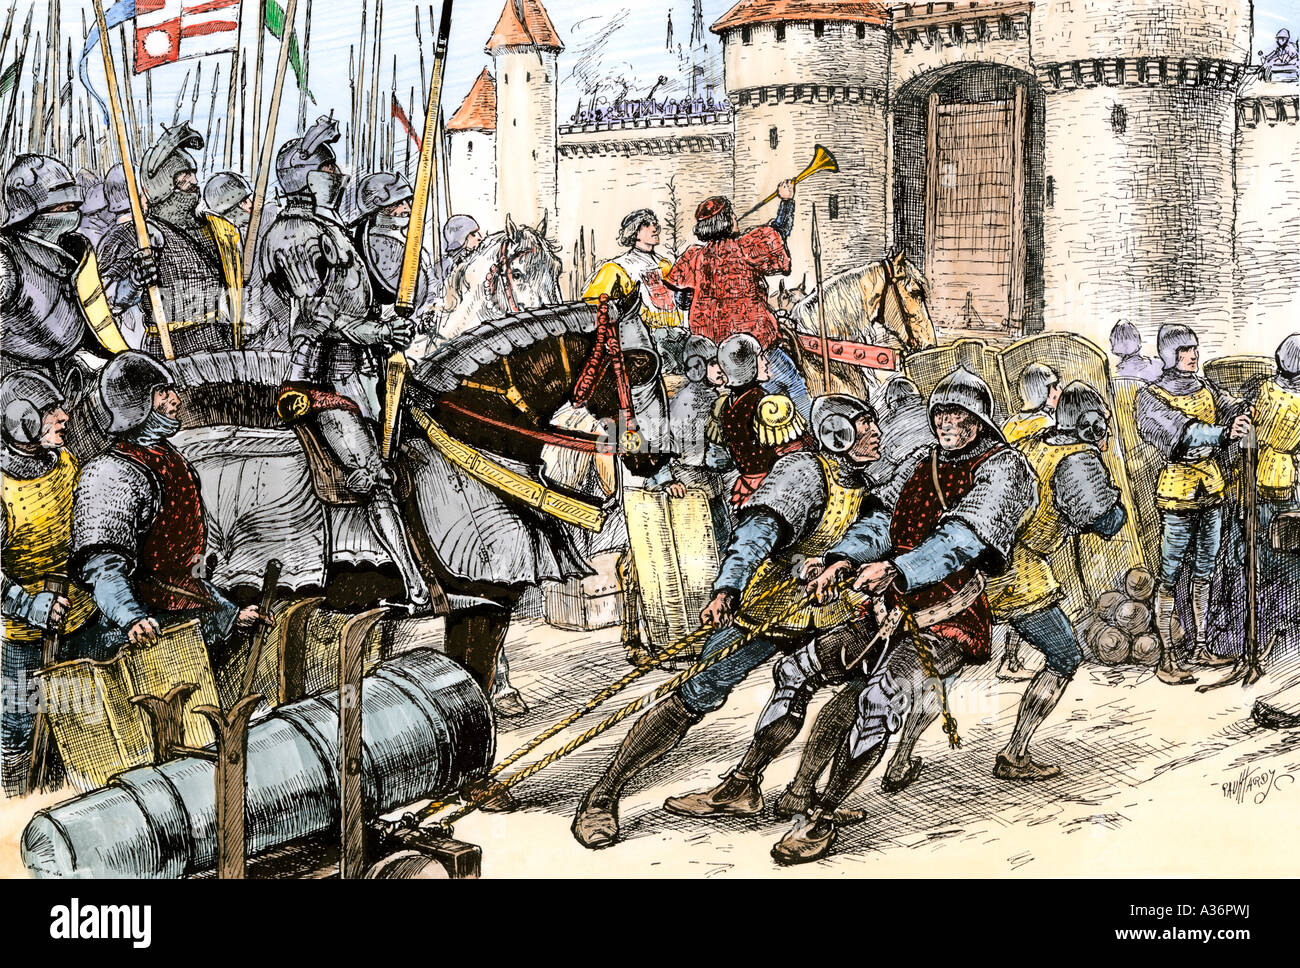 English army of Edward III attacking Calais during the Hundred Years War with France 1347. Hand-colored woodcut - Stock Image